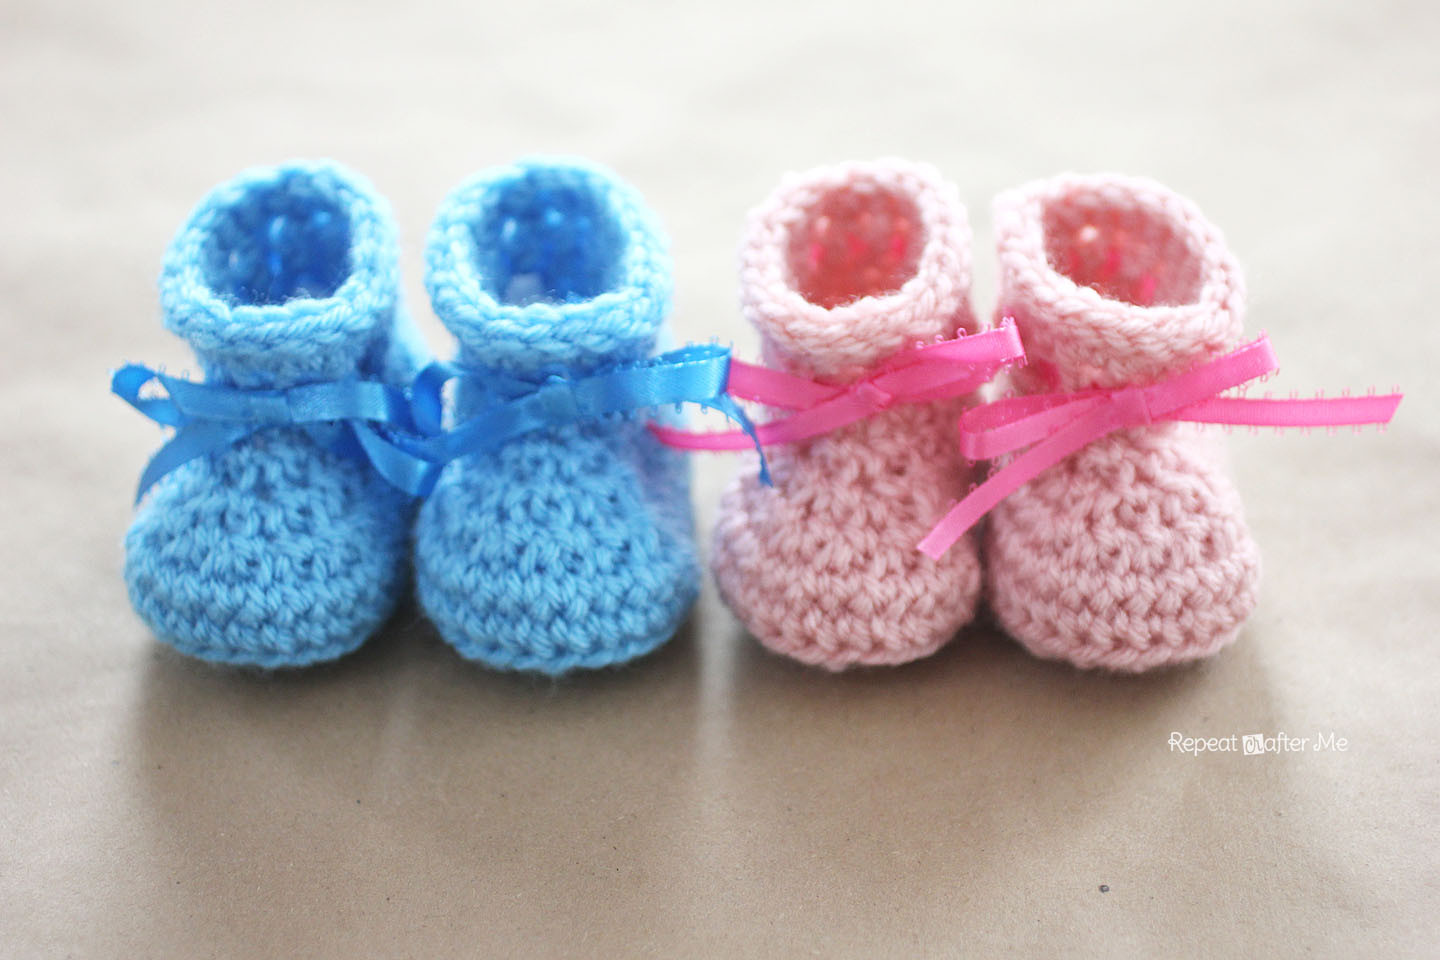 Elegant Crochet Newborn Baby Booties Pattern Repeat Crafter Me Free Crochet Patterns for Newborns Of Unique 40 Photos Free Crochet Patterns for Newborns